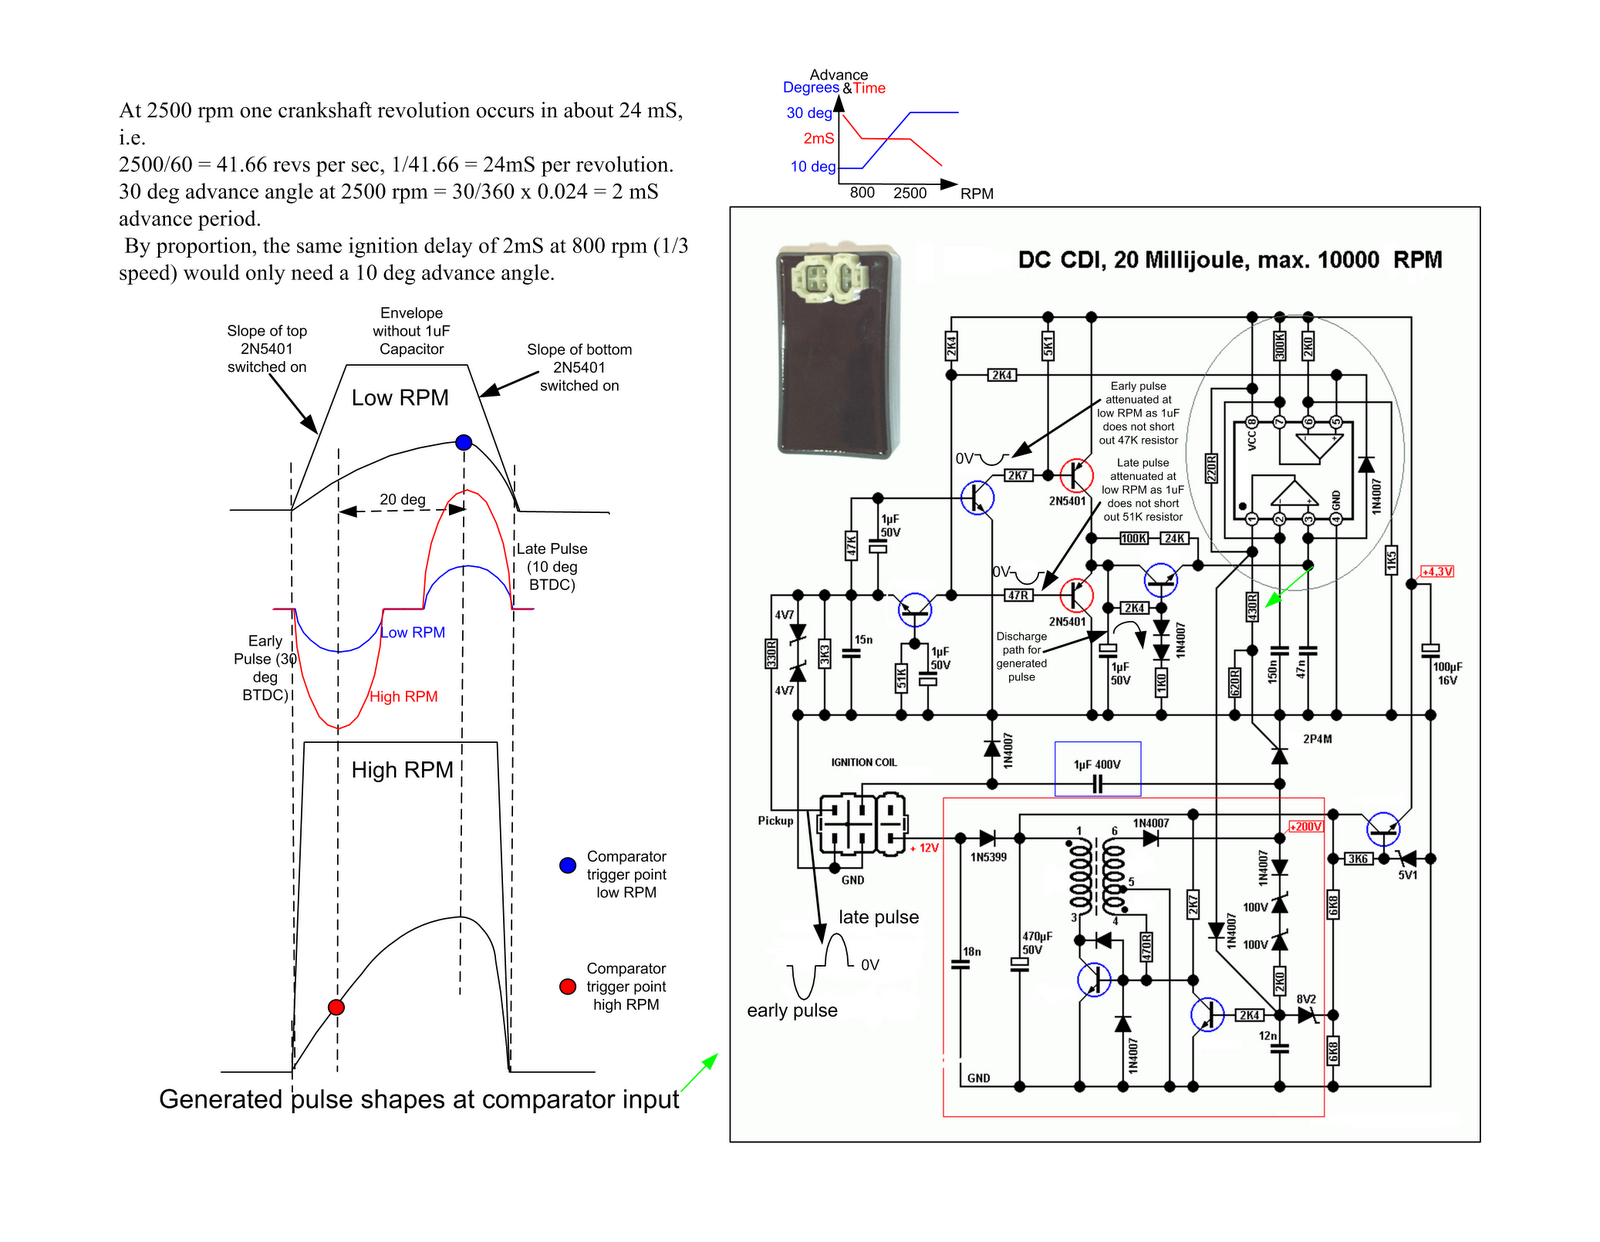 Honda Cg 125 Cdi Wiring Diagram on Suzuki Samurai Wire Harness